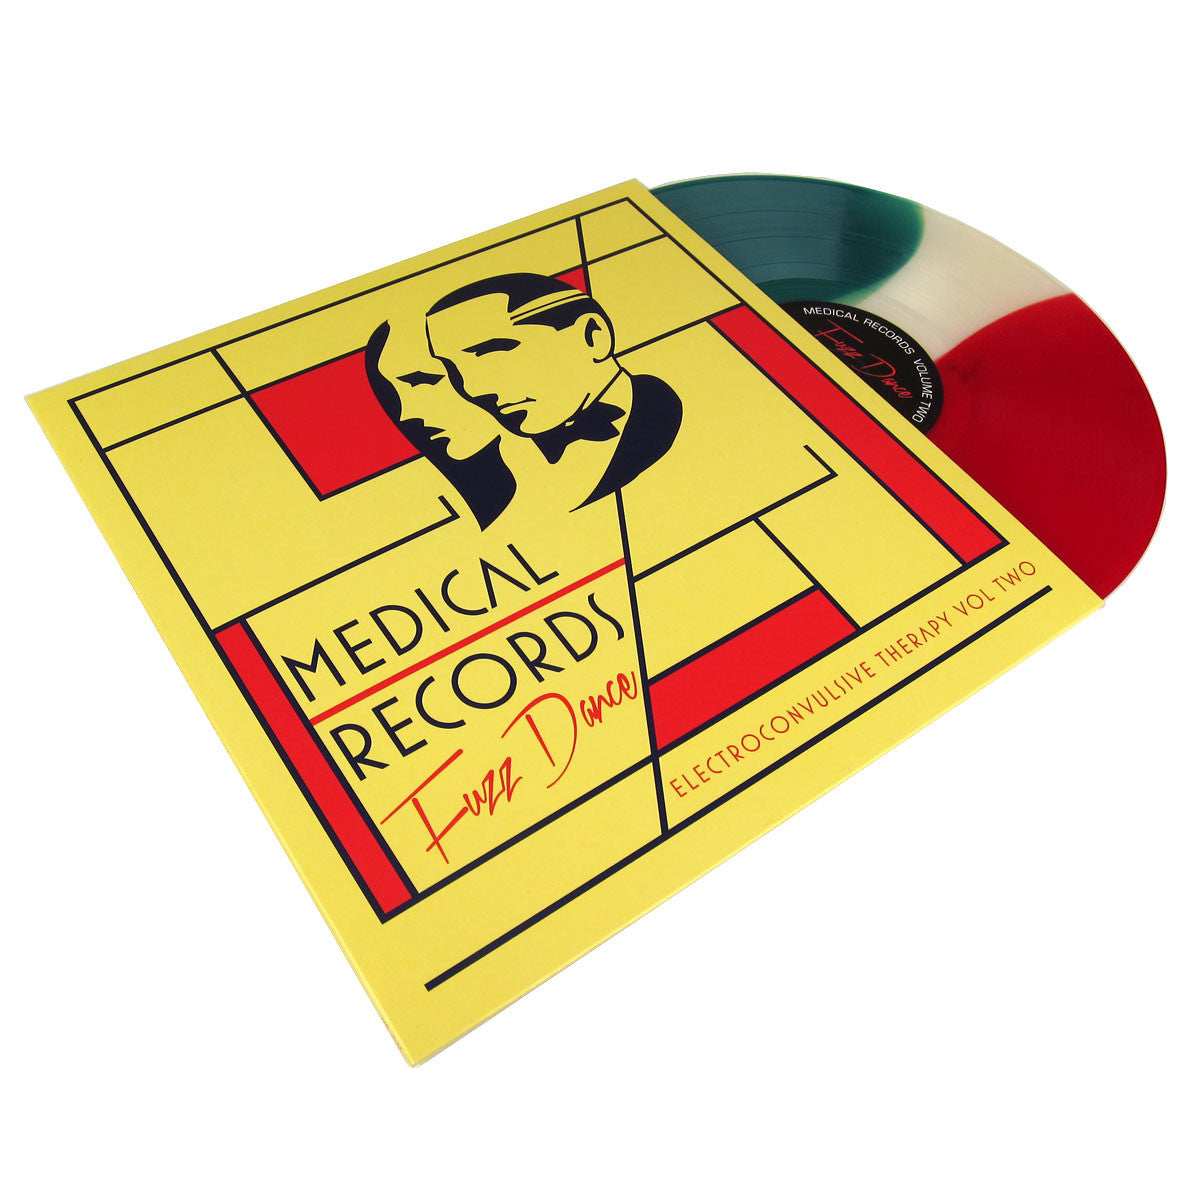 Medical Records: Electroconvulsive Therapy Vol.2 Vinyl LP (Record Store Day 2014)